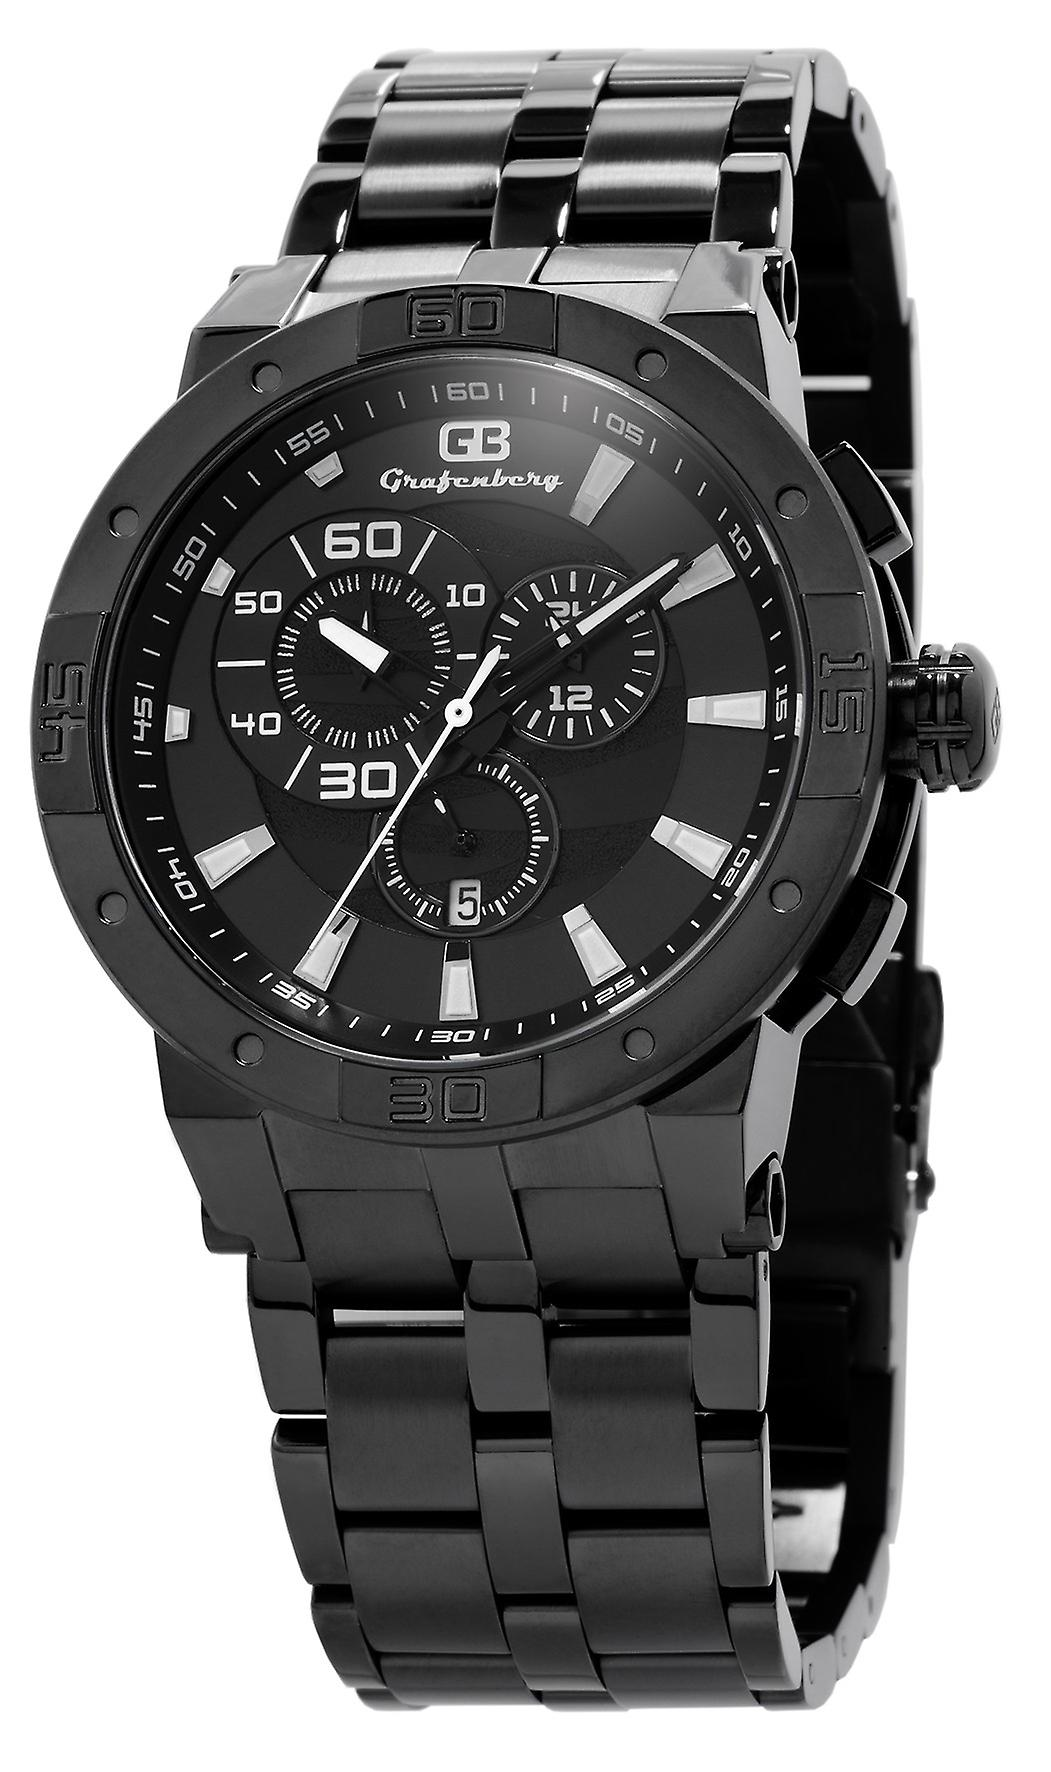 Grafenberg gents chronograph, GB203-622